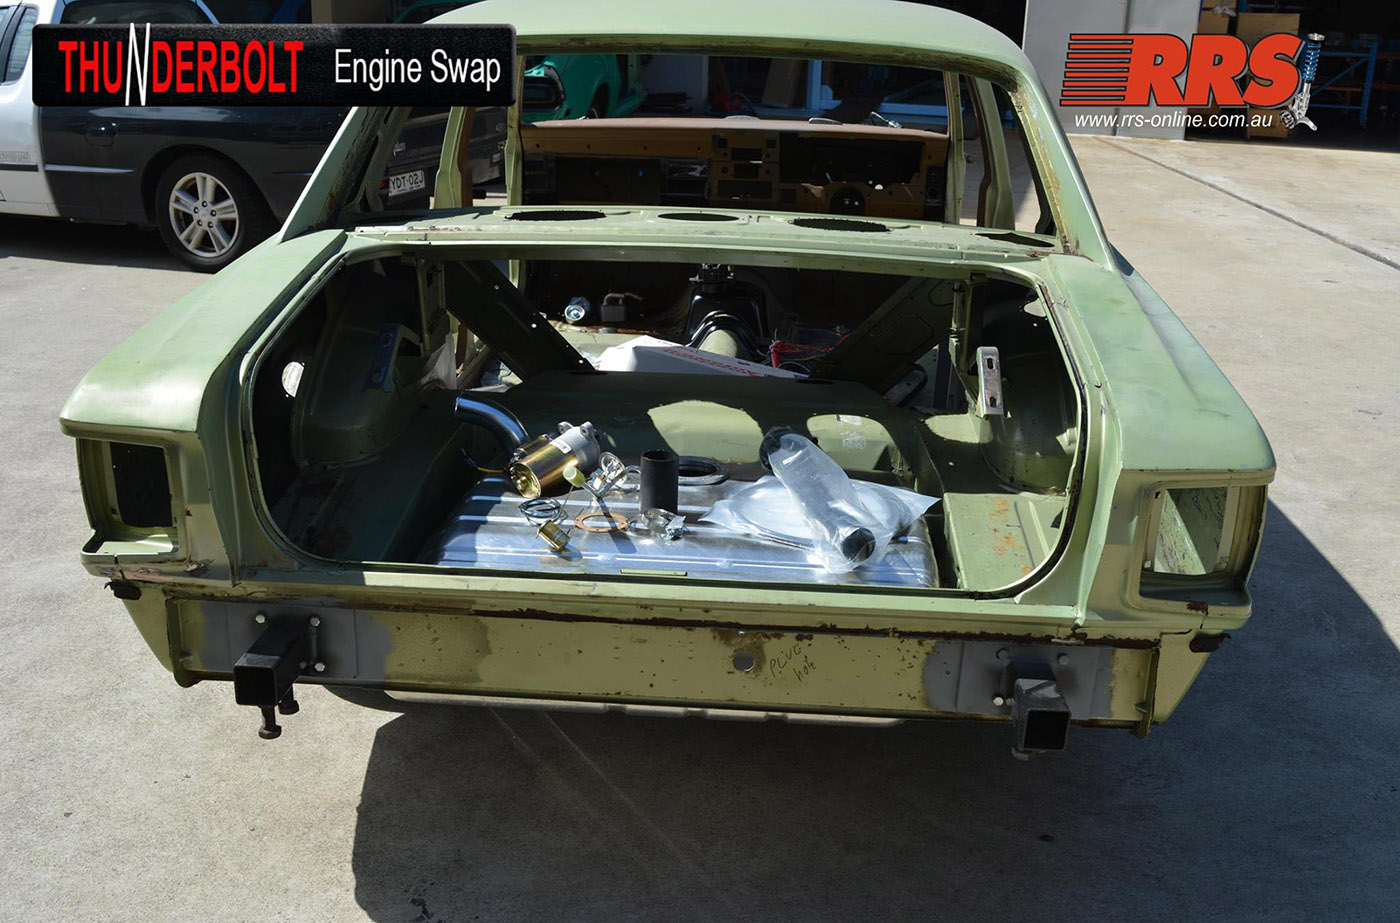 Coyote Swap Kit for Clic Fords – Engine Swap Depot on shadow cars, pd cars, fy cars,